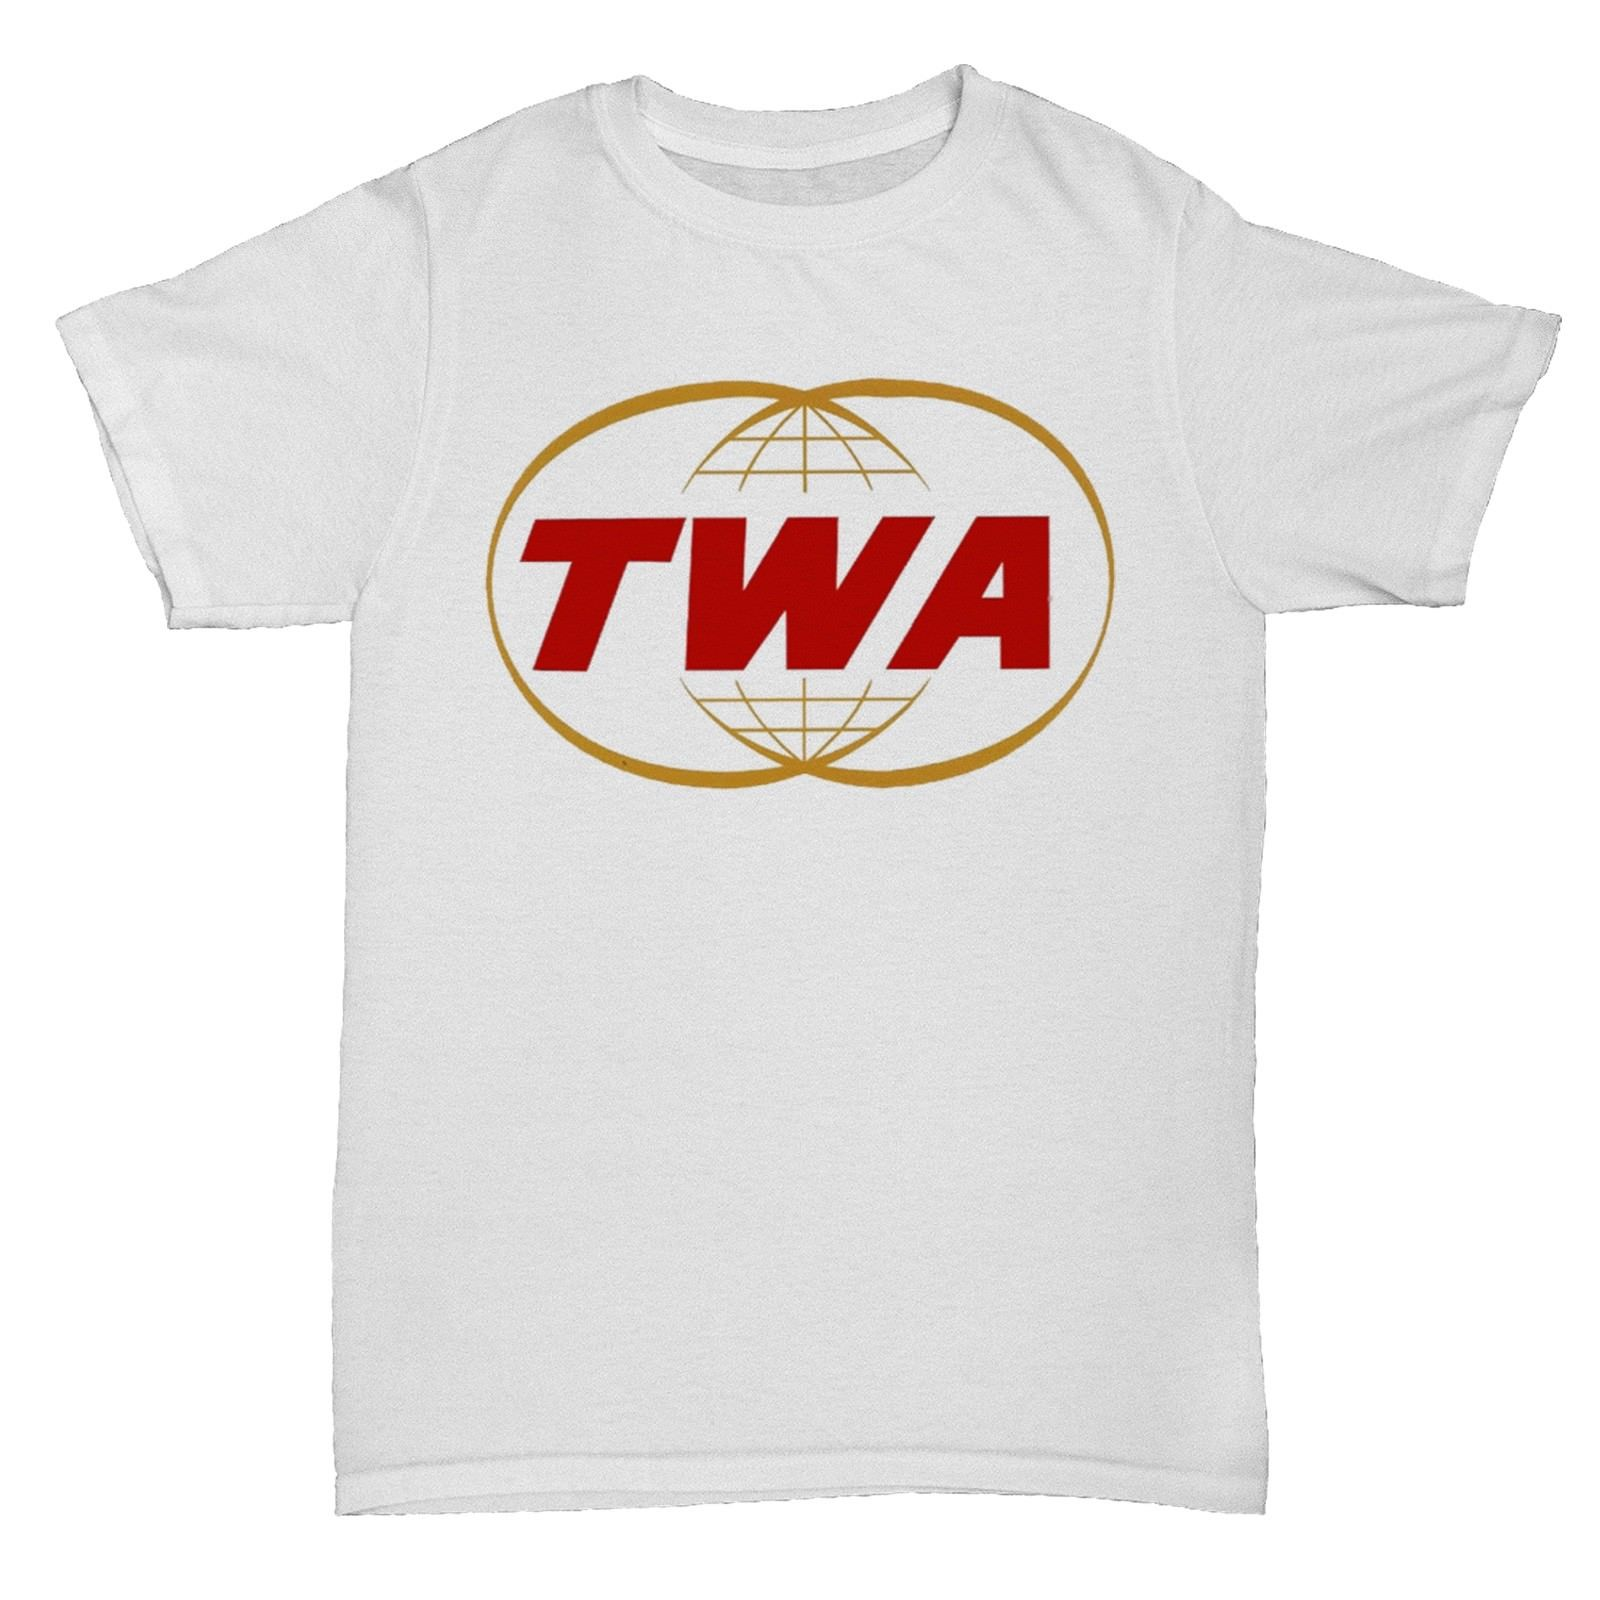 TWA TRANS AIRWAYS BA AIRLINES RETRO AEROPLANE BOAC PAN AM T SHIRT Print T-Shirt Harajuku ...